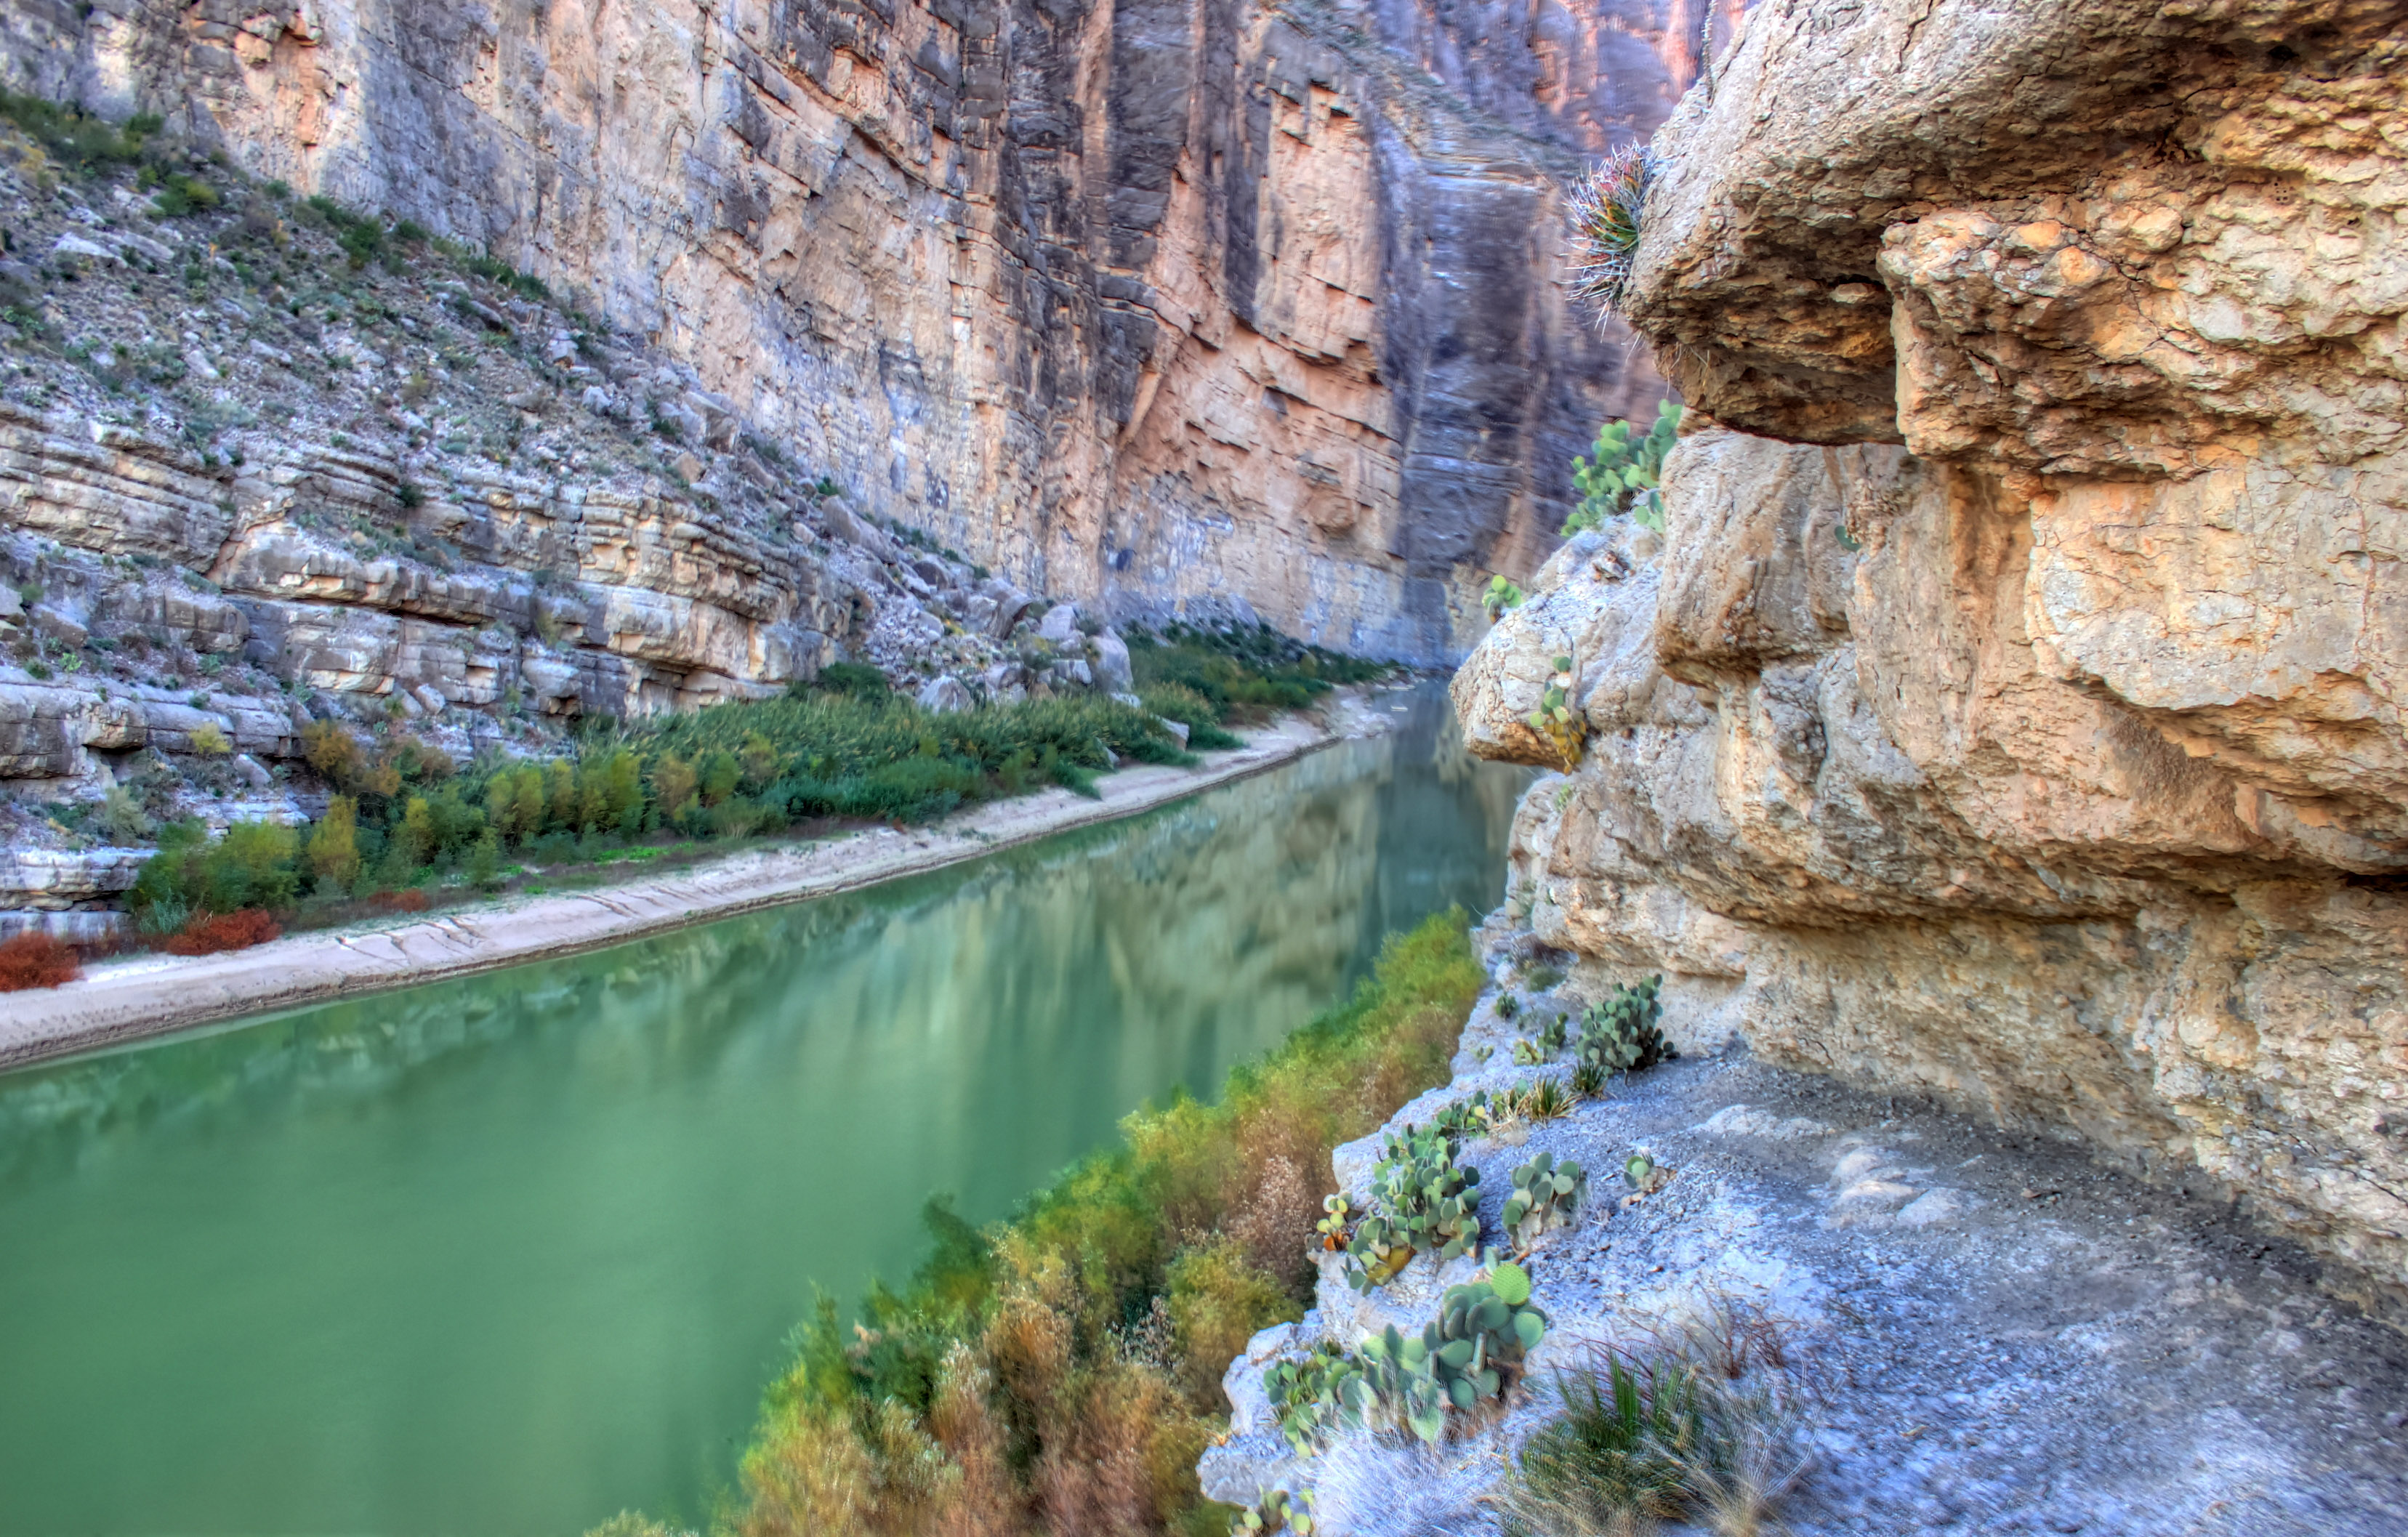 File:Gfp-texas-big-bend-national-park-further-into-the ...